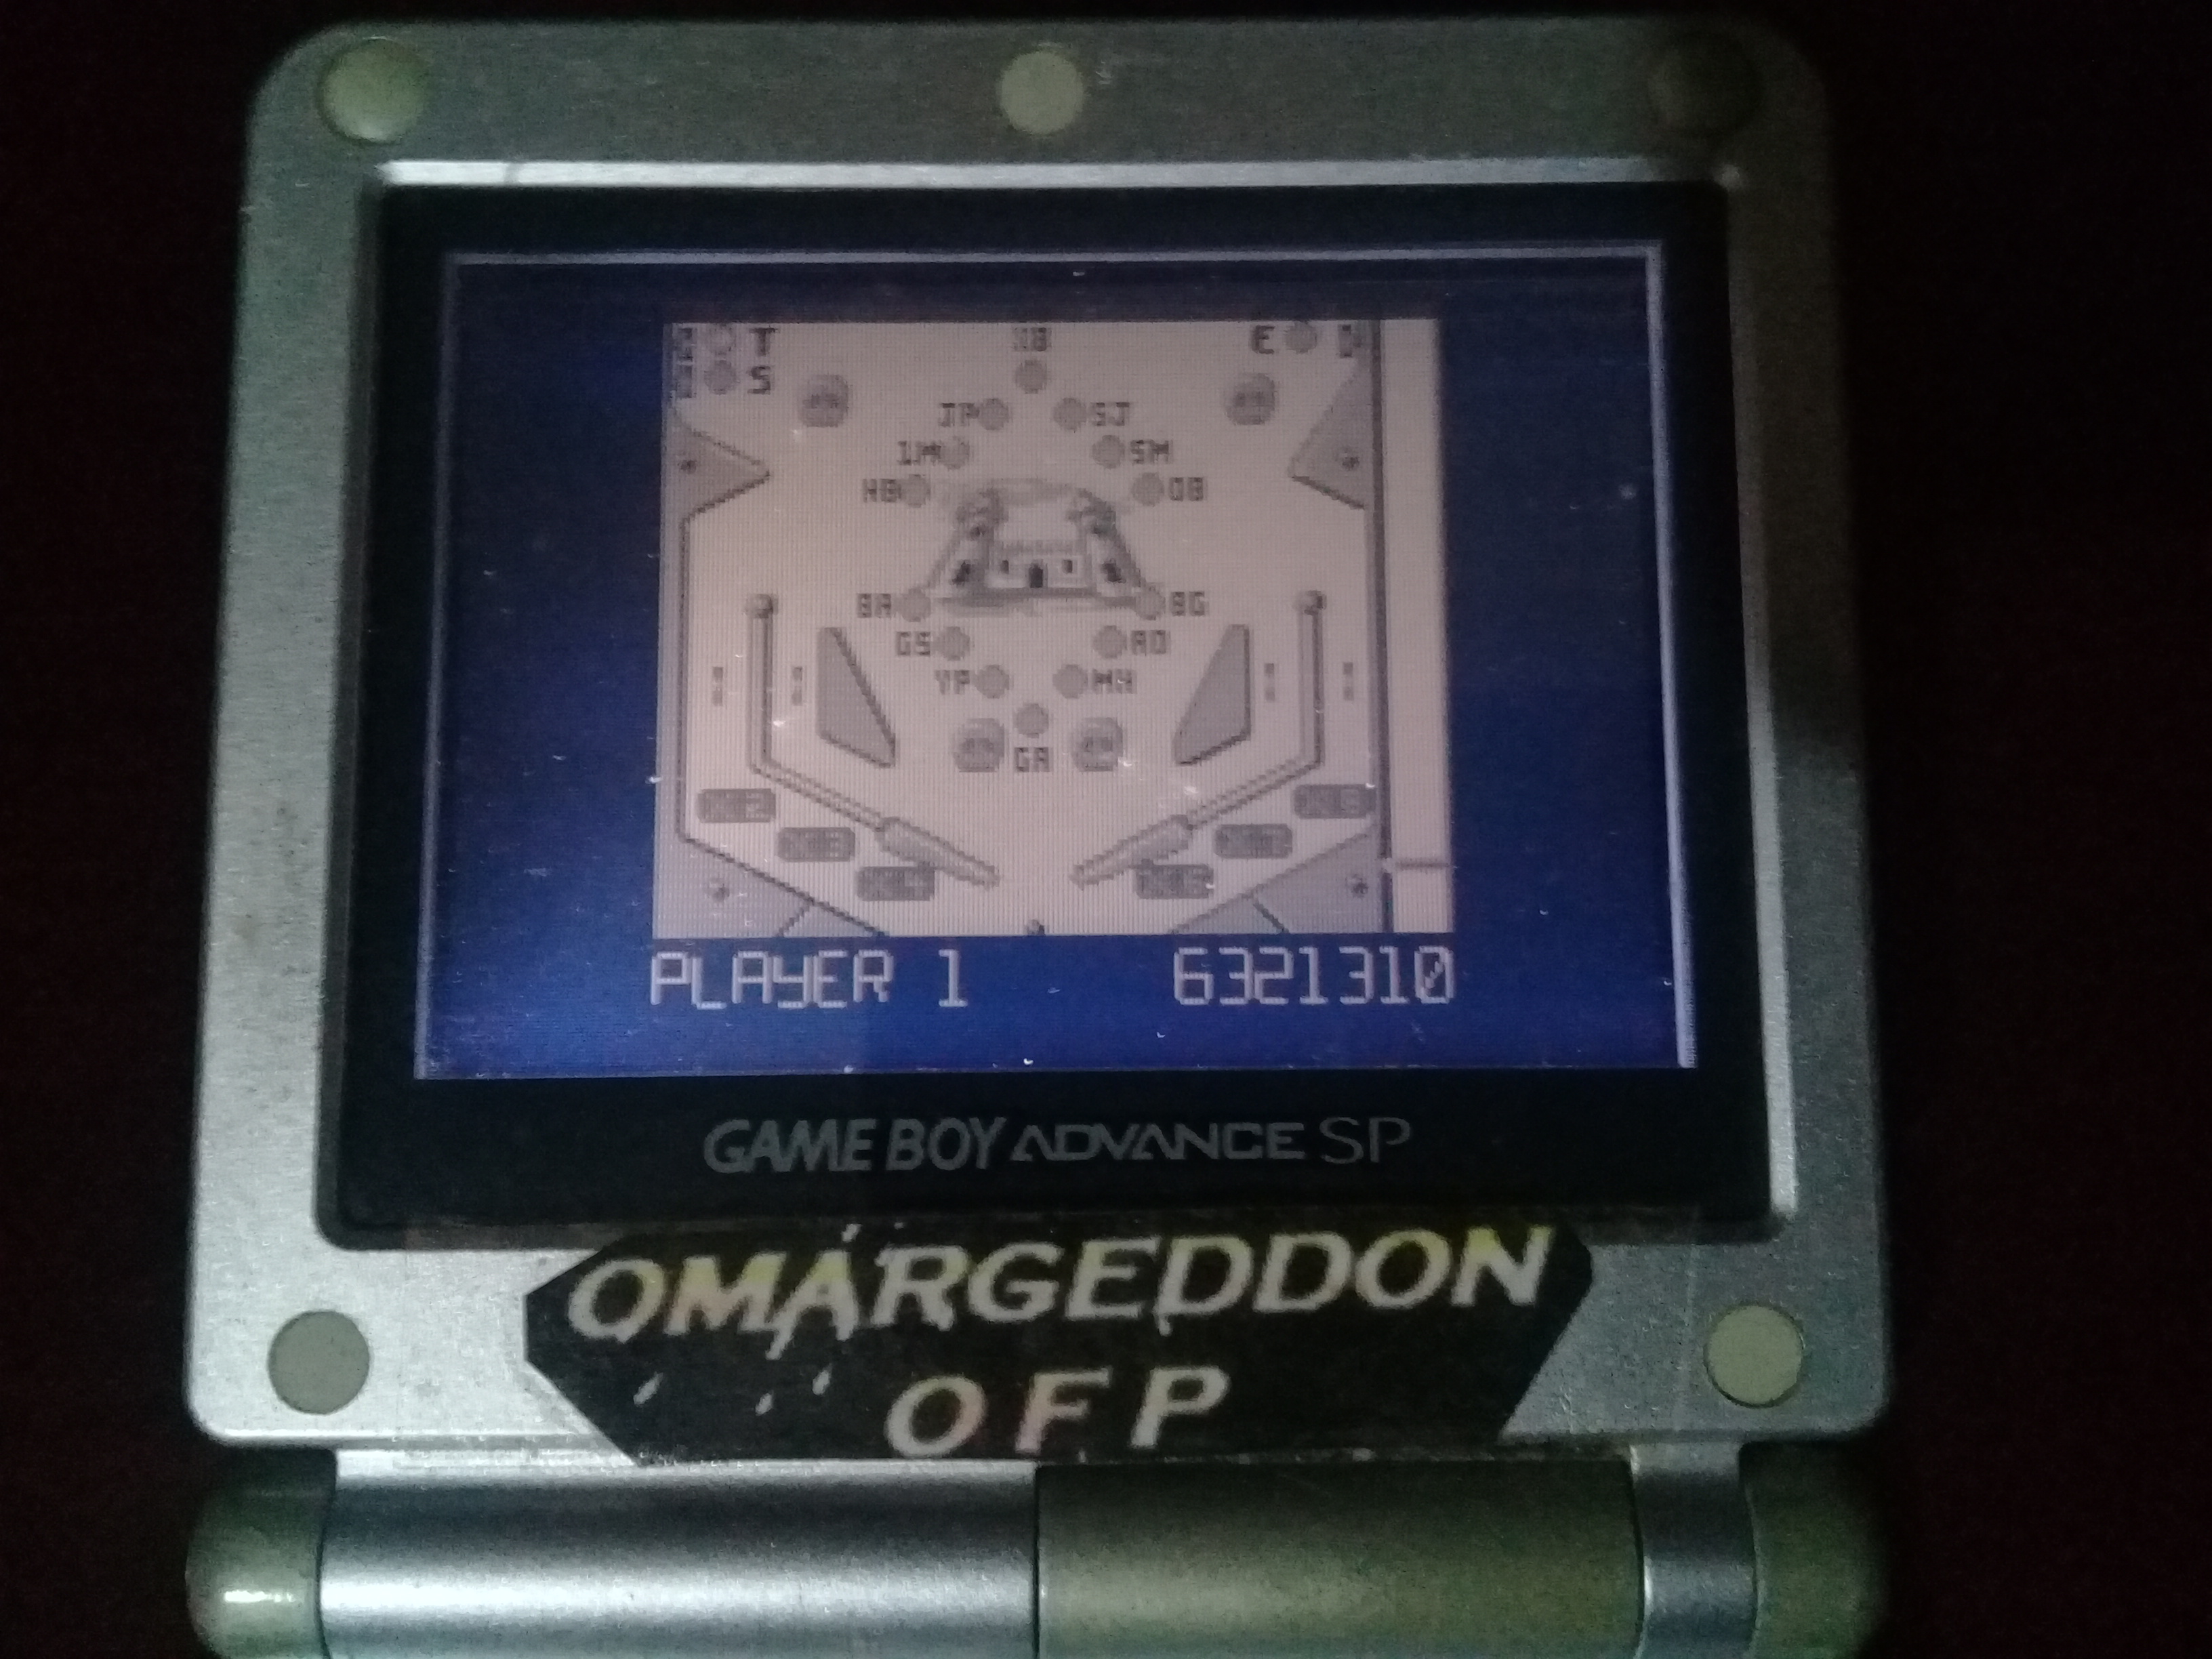 omargeddon: Pinball Fantasies: Stones N Bones (Game Boy) 6,321,310 points on 2020-05-08 20:39:26